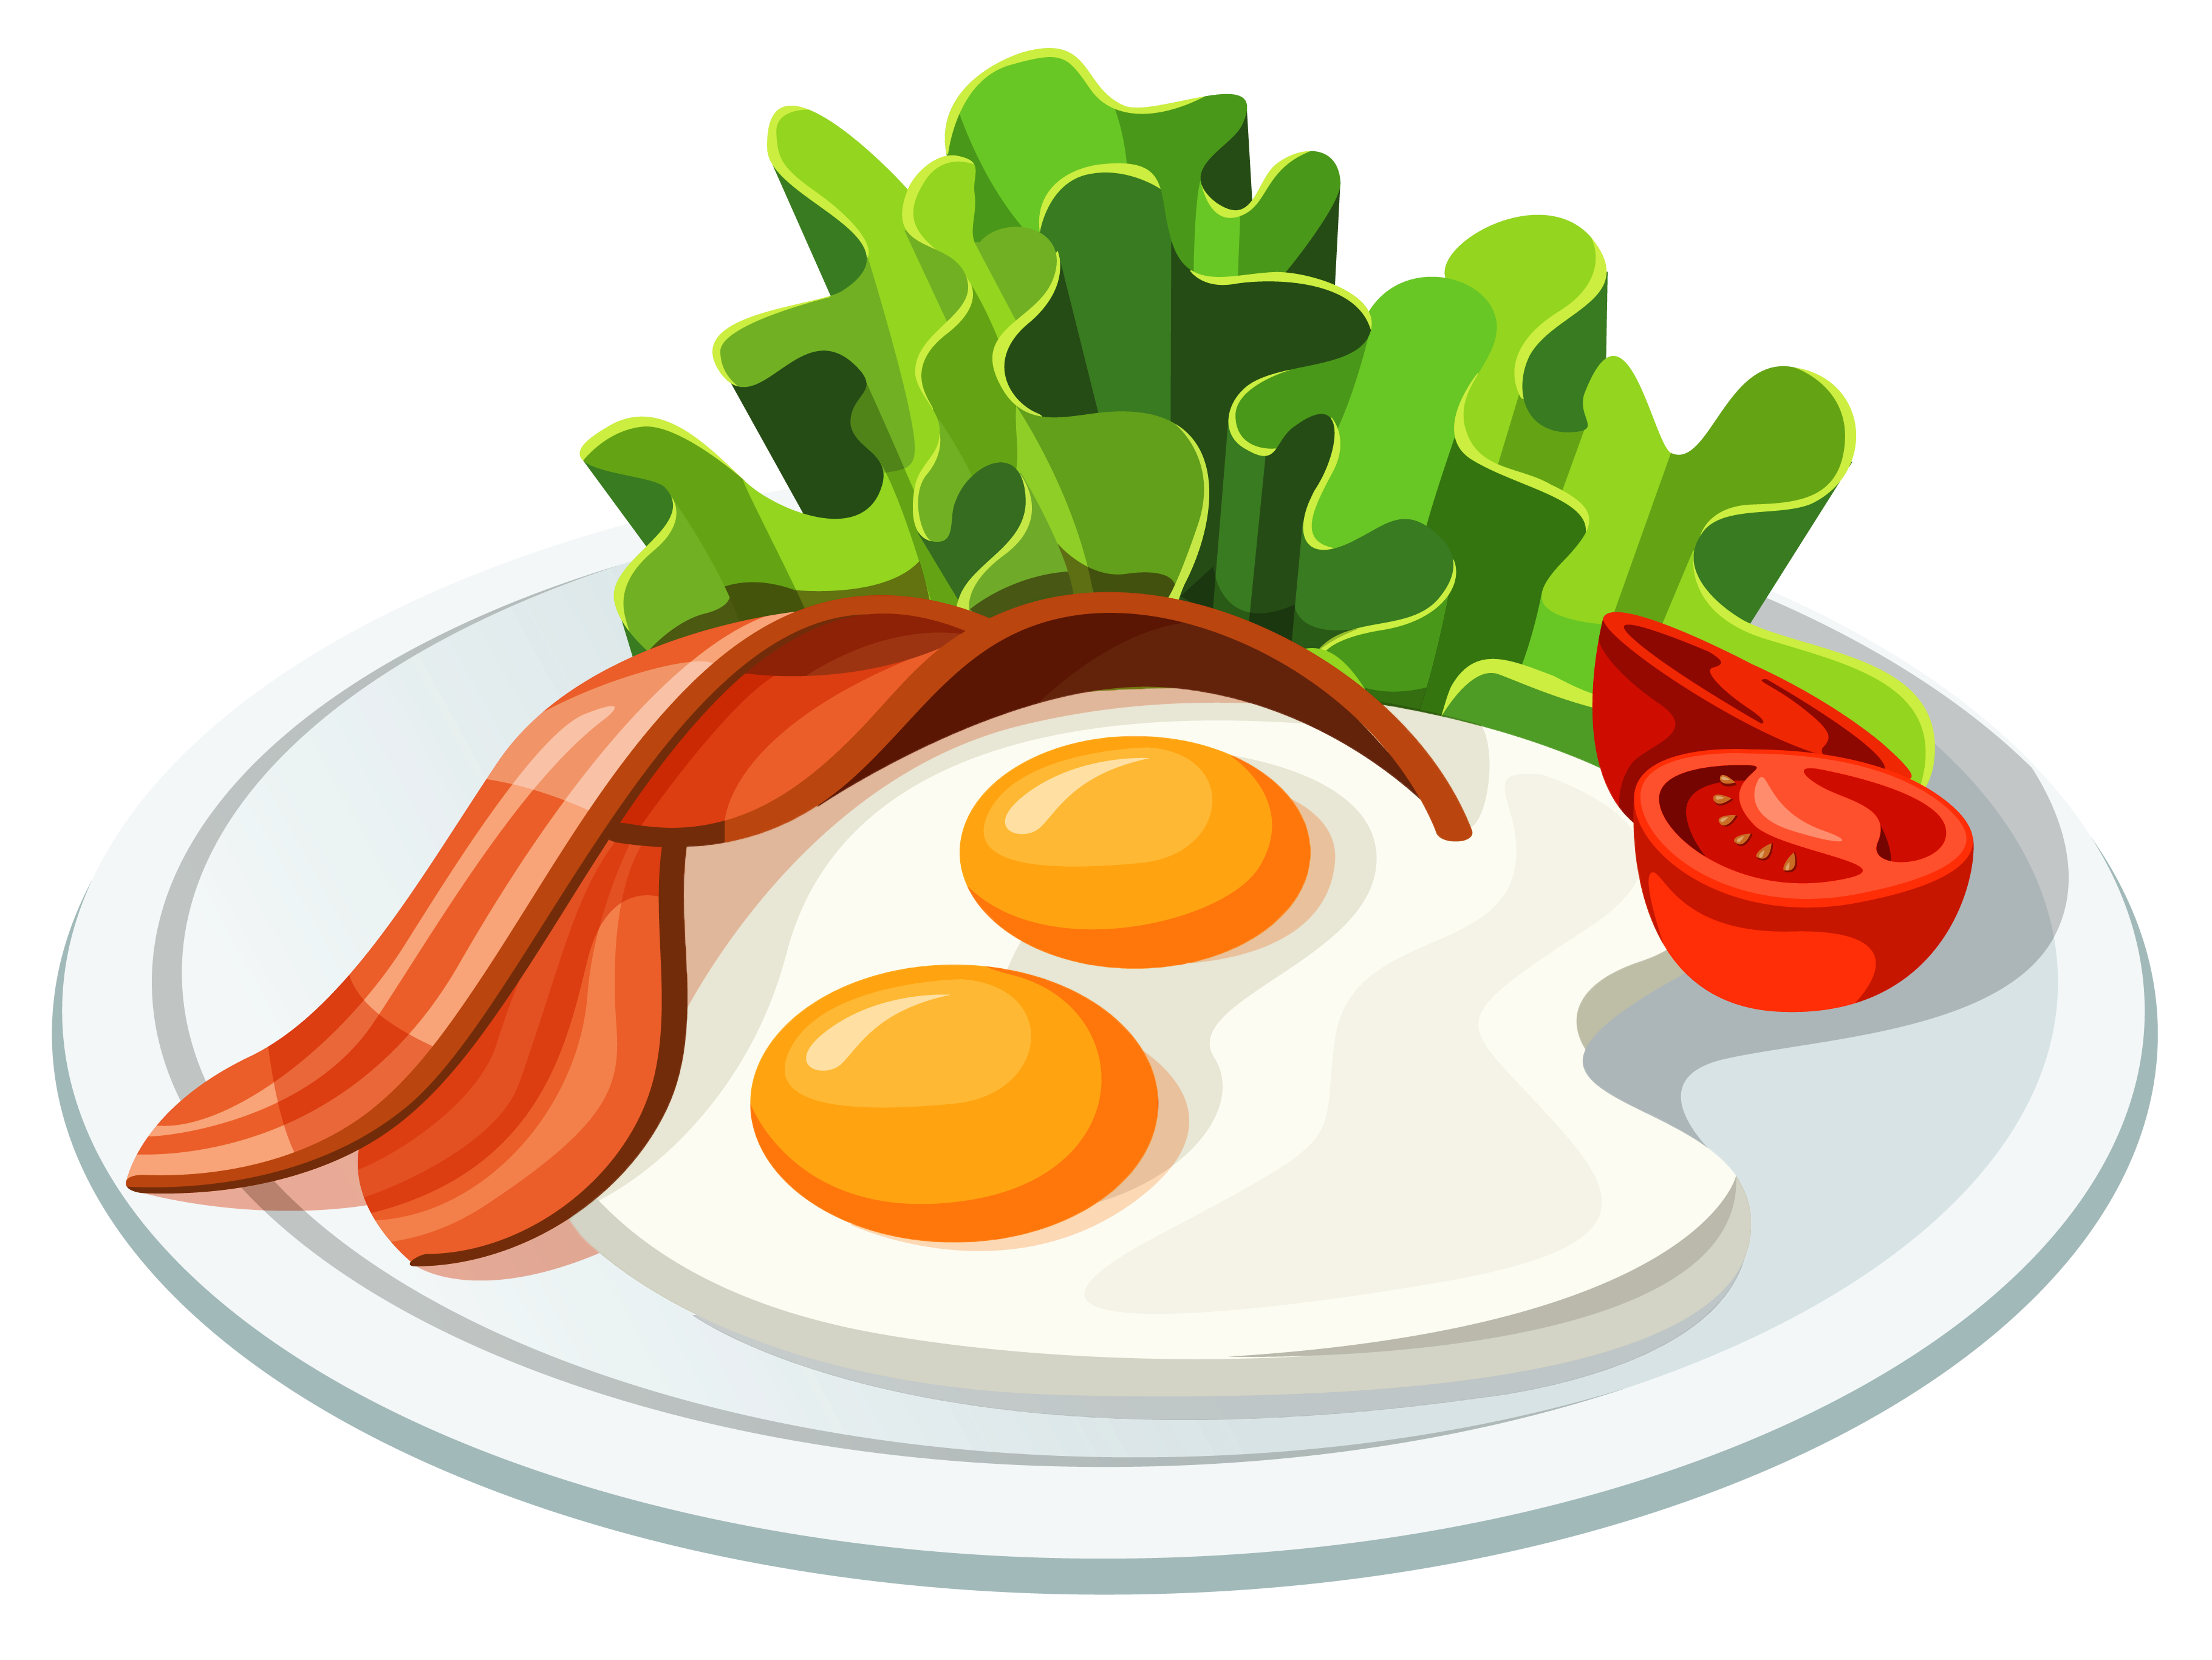 Eggs and Bacon PNG Vector Clipart งานฝีมือ, ไข่, สอน